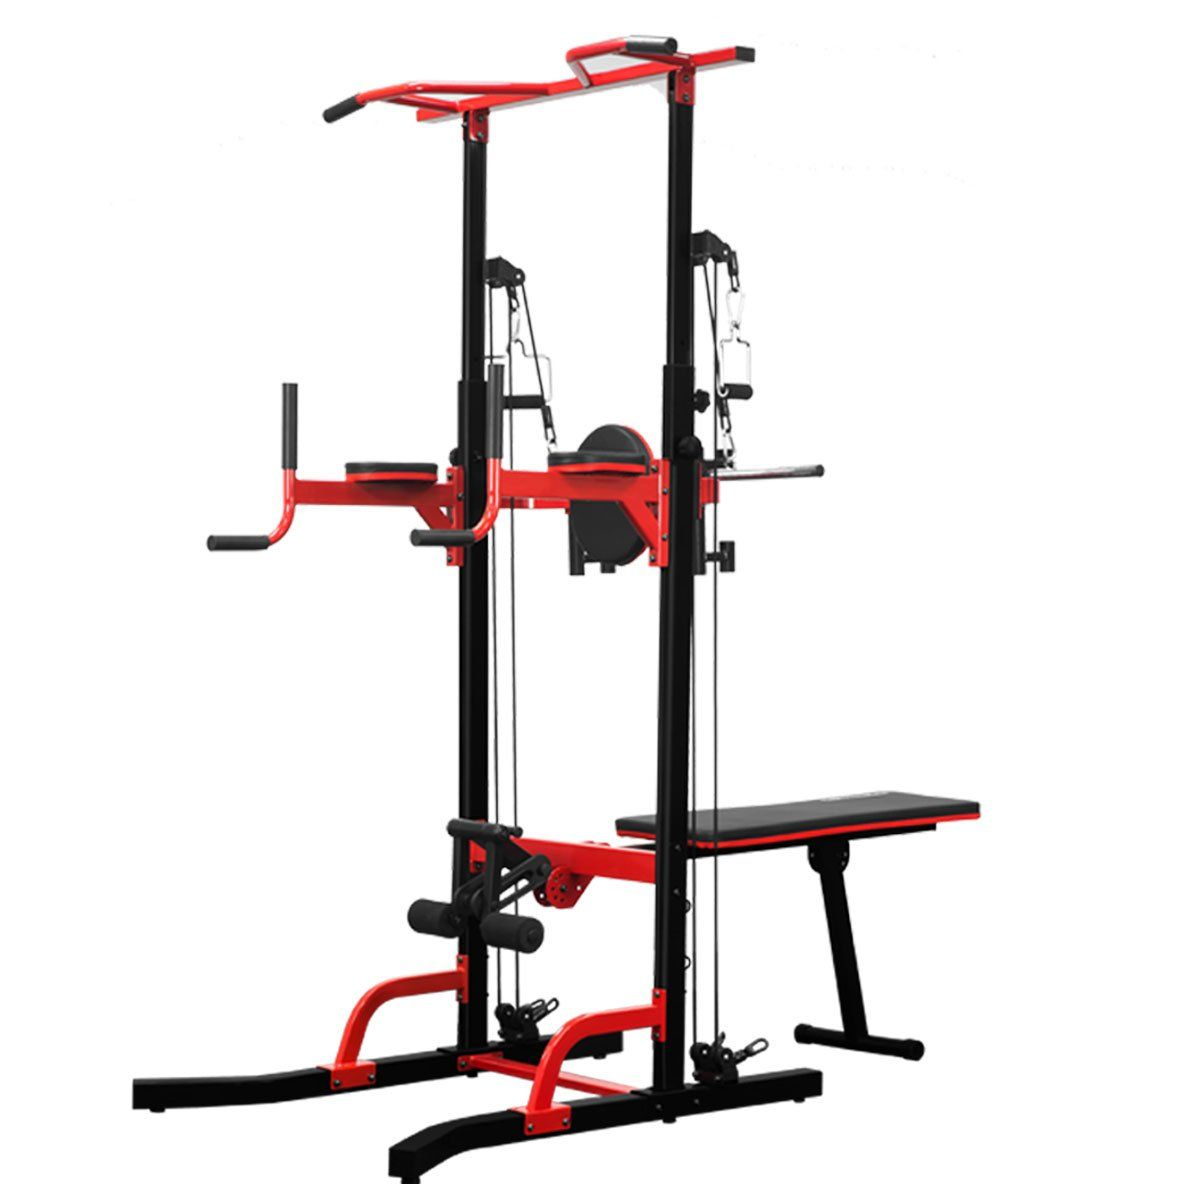 Powertrain Multi Station Home Gym Chinup Pullup Power